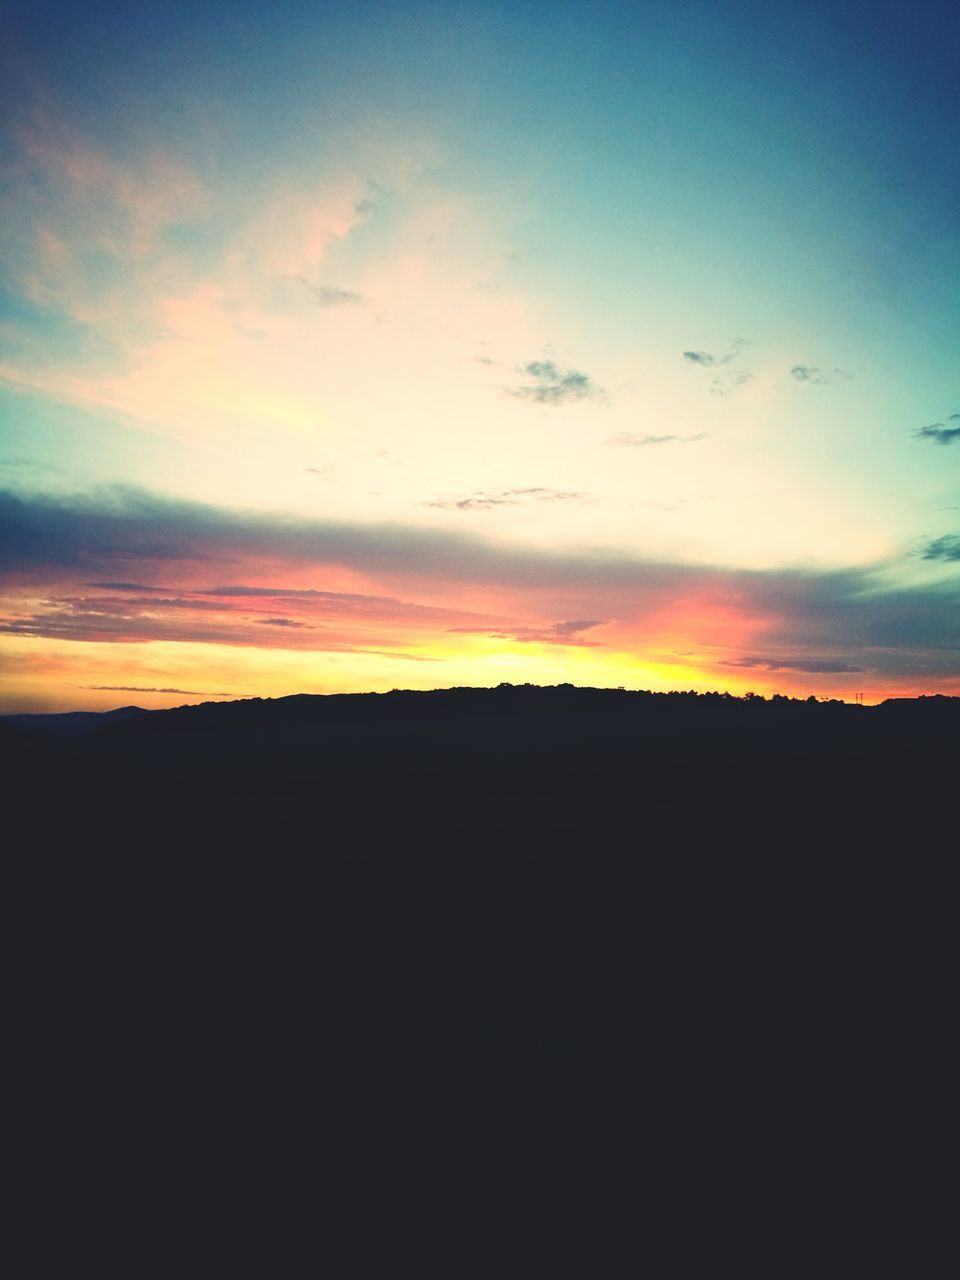 sunset, silhouette, nature, tranquil scene, sky, scenics, beauty in nature, tranquility, landscape, no people, outdoors